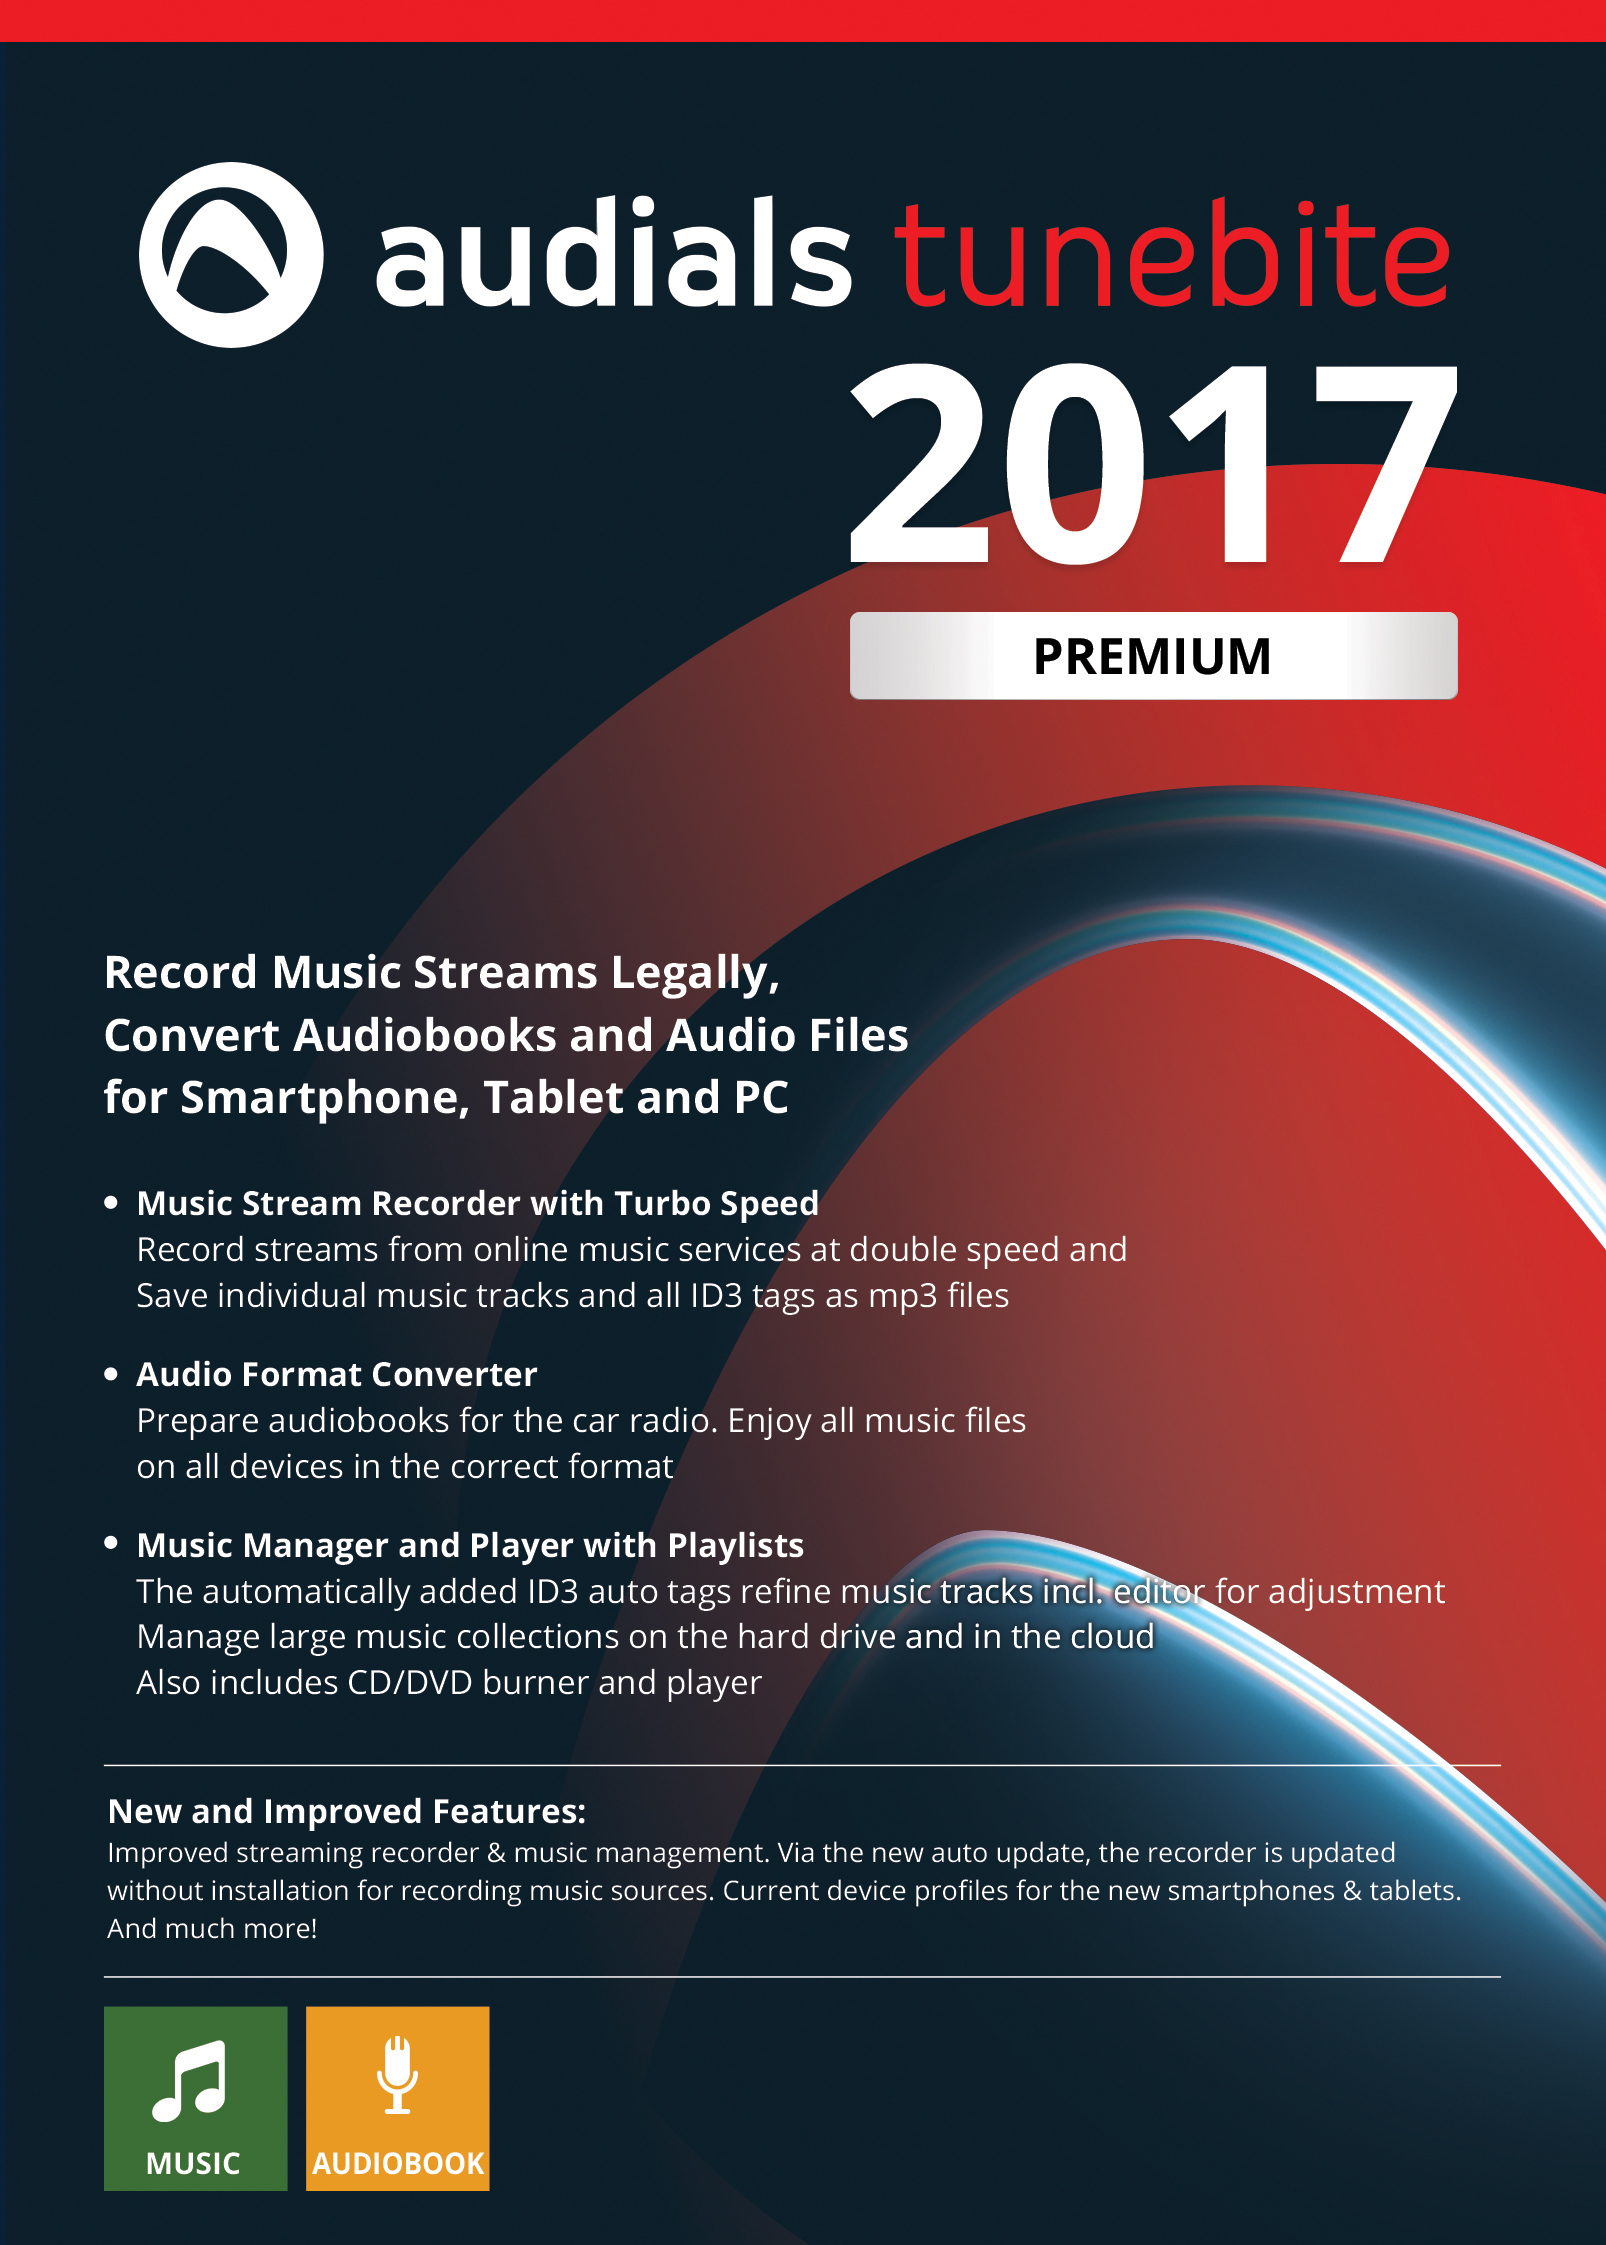 audials-tunebite-2017-premium-save-music-from-paid-services-and-websites-easily-download